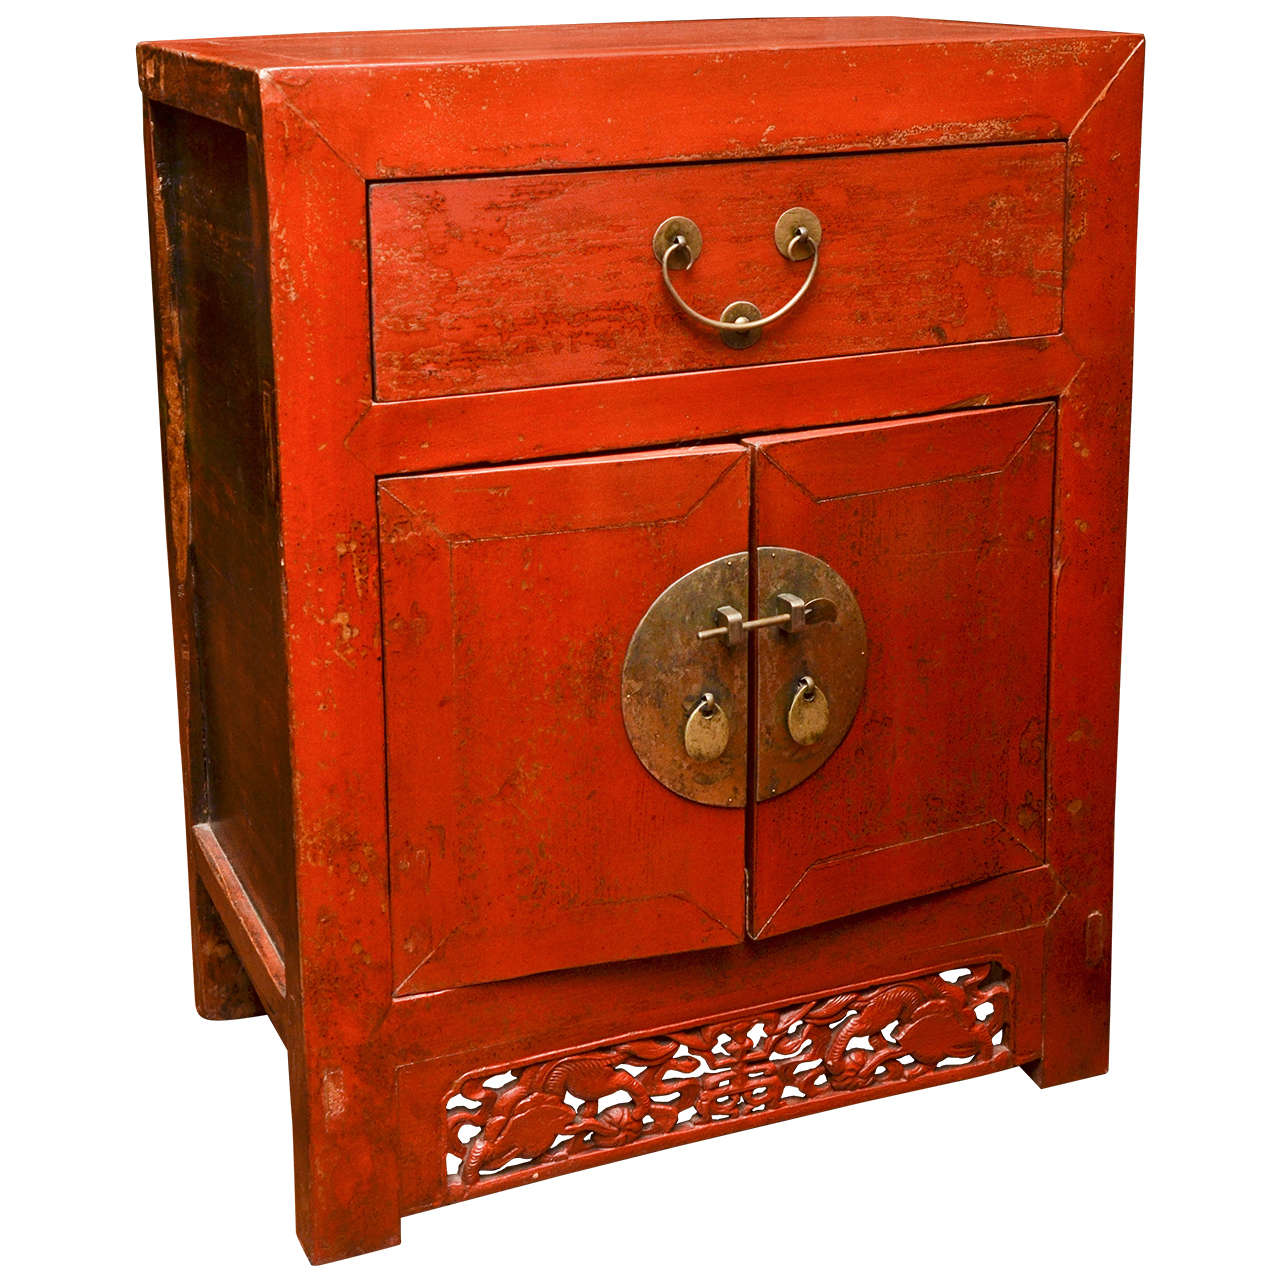 Late 19th Century Qing Dynasty Shanghai Red Lacquered Bedside Chest